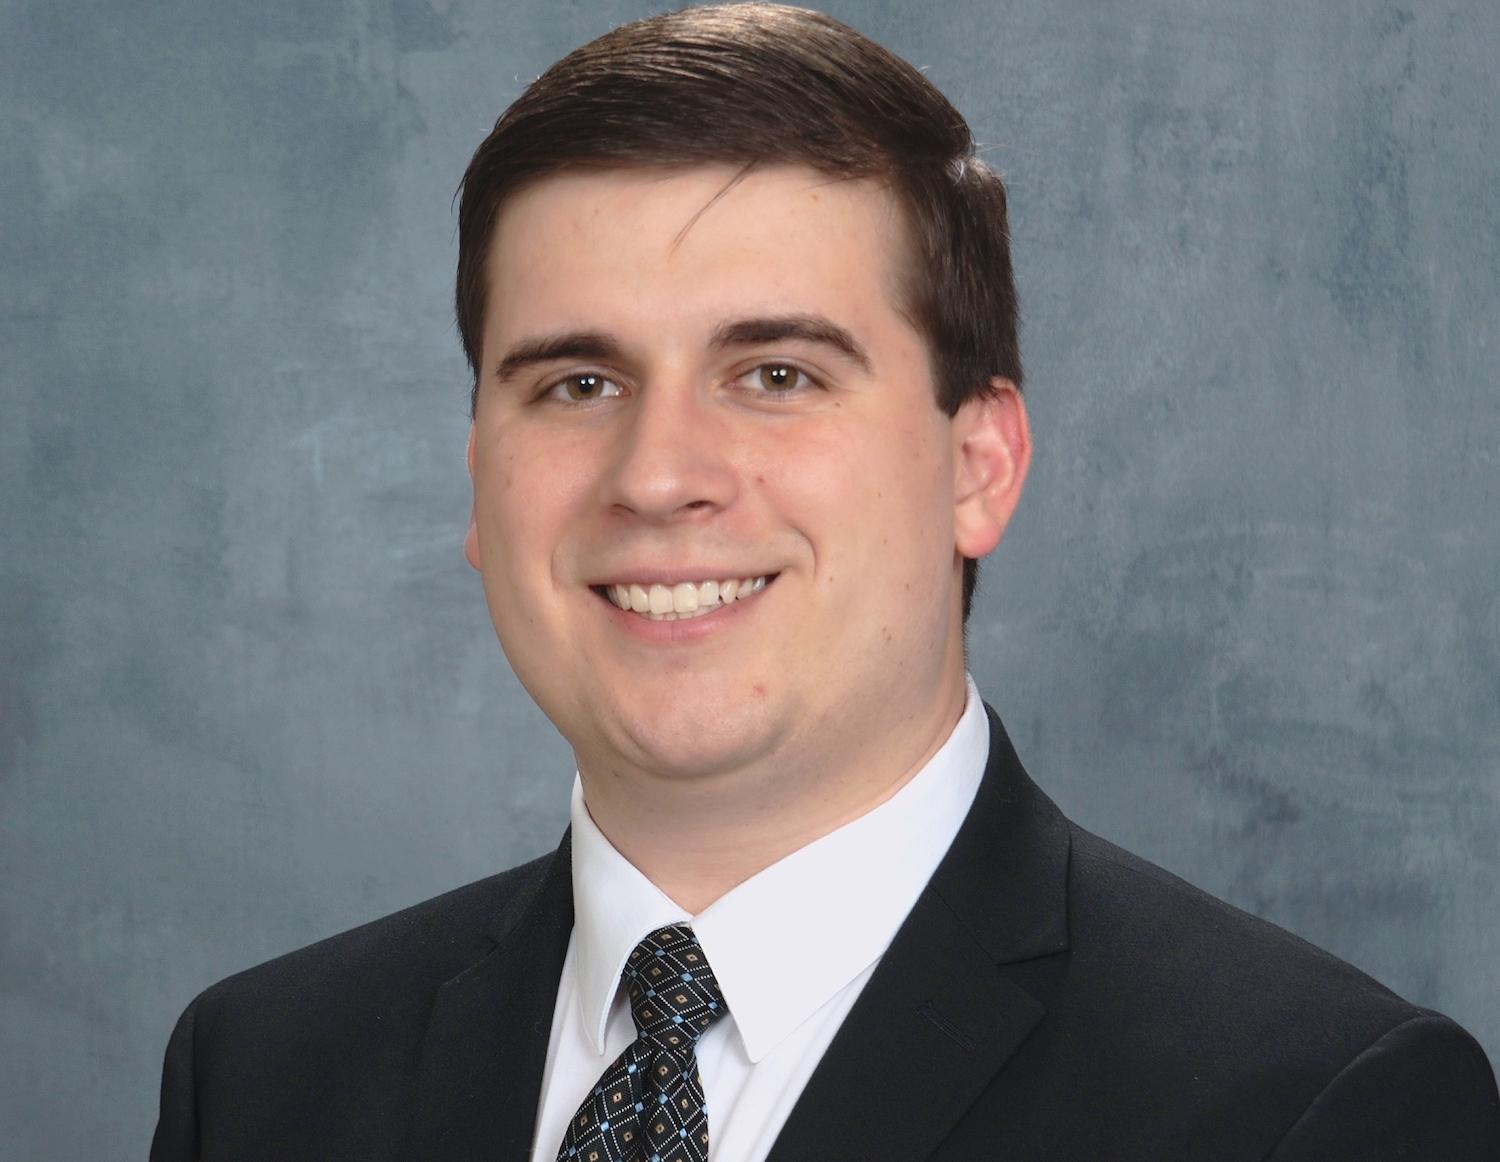 TYLER ALLEN Financial Professional & Insurance Agent